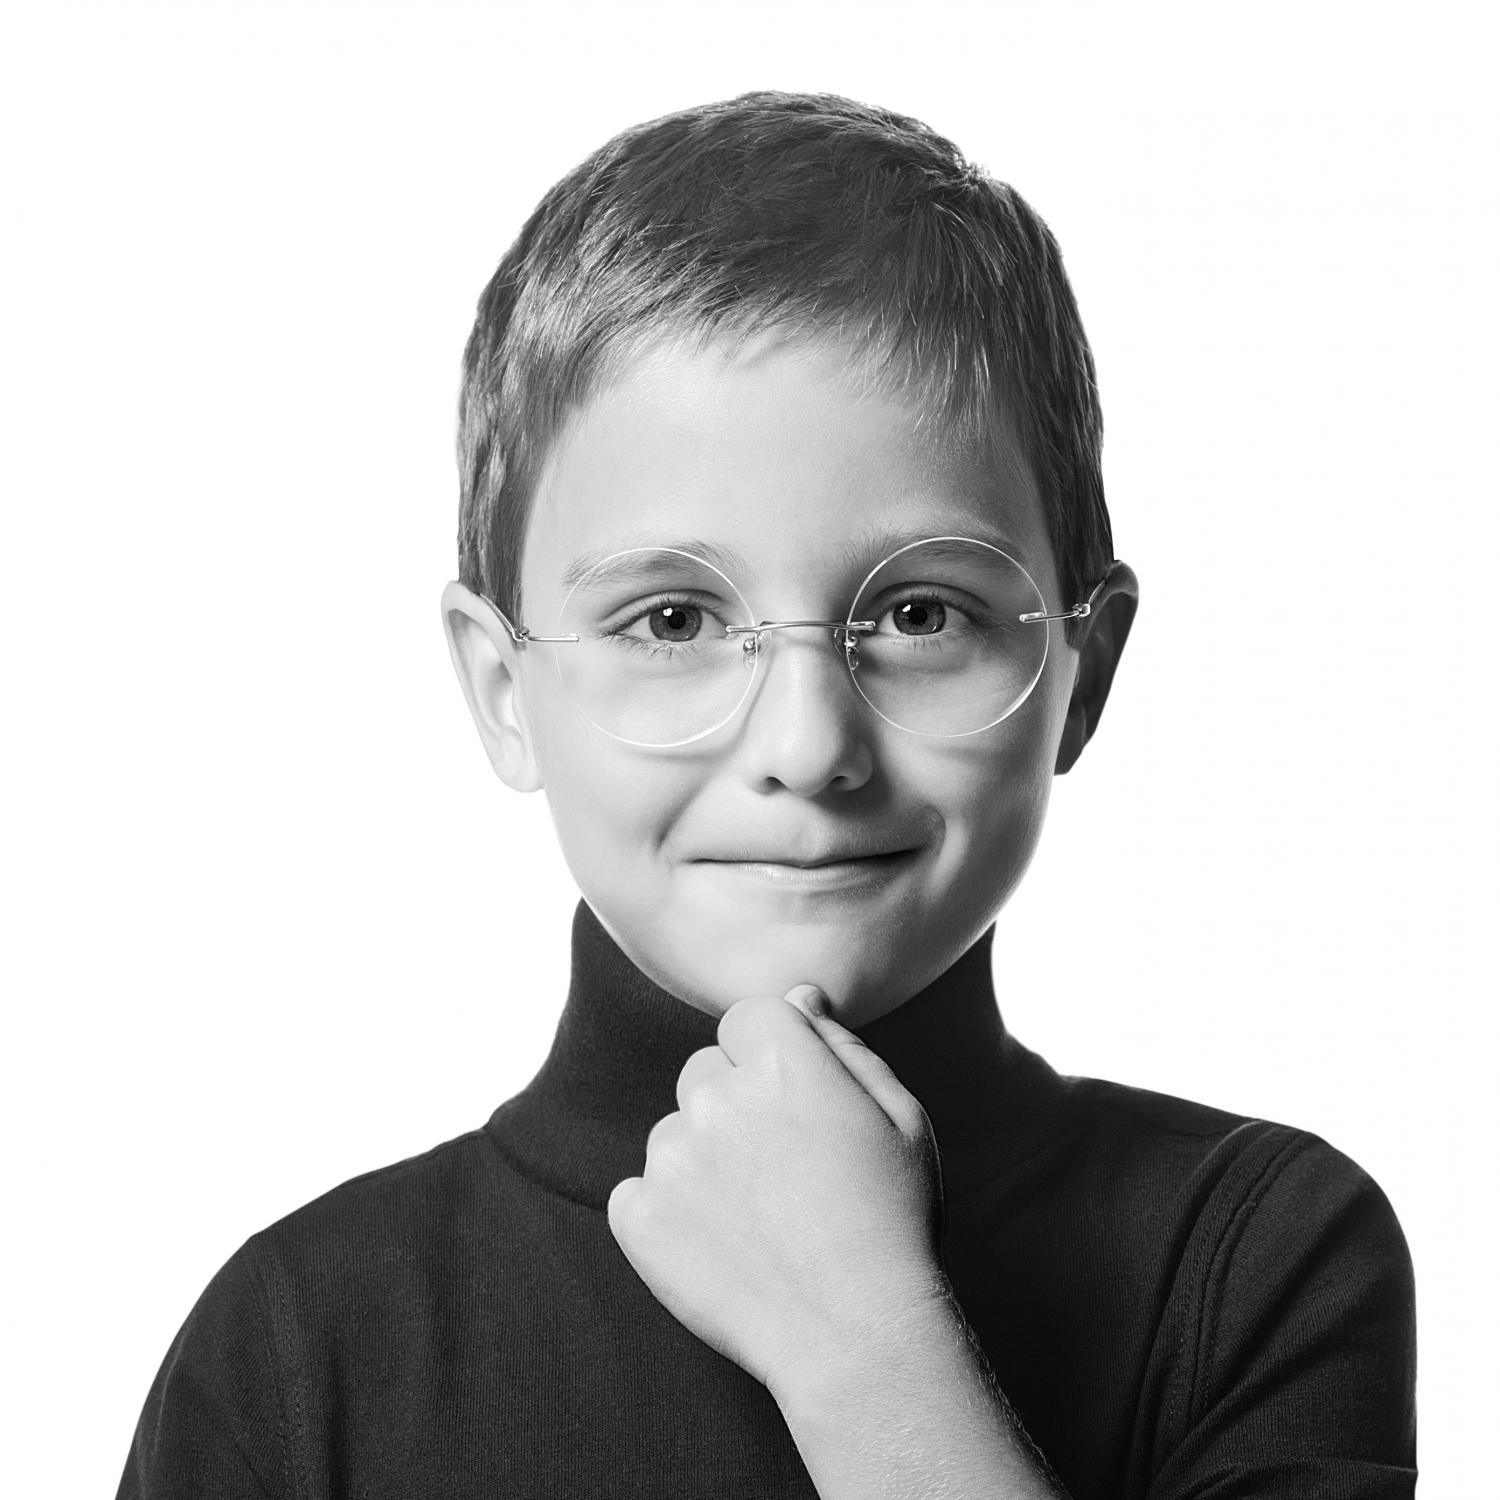 my intelligence as a child Raising an intelligent child depends on their ability to process information what makes kids intelligent raising smart kids by laurie barclay, md where intelligence is concerned.